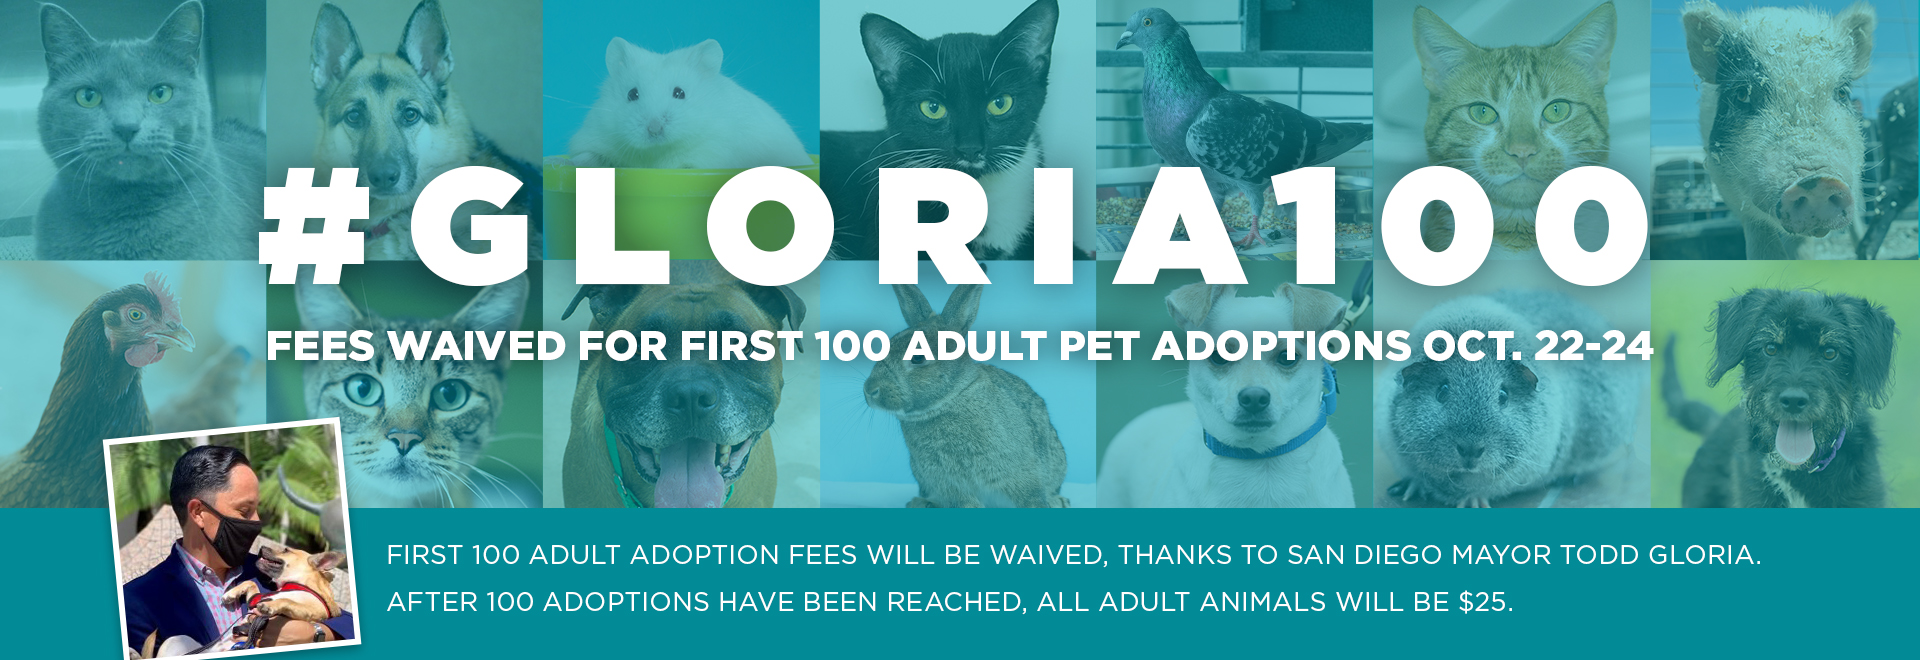 Fees waved for first 100 adult pet adoptions October 22-24 2021